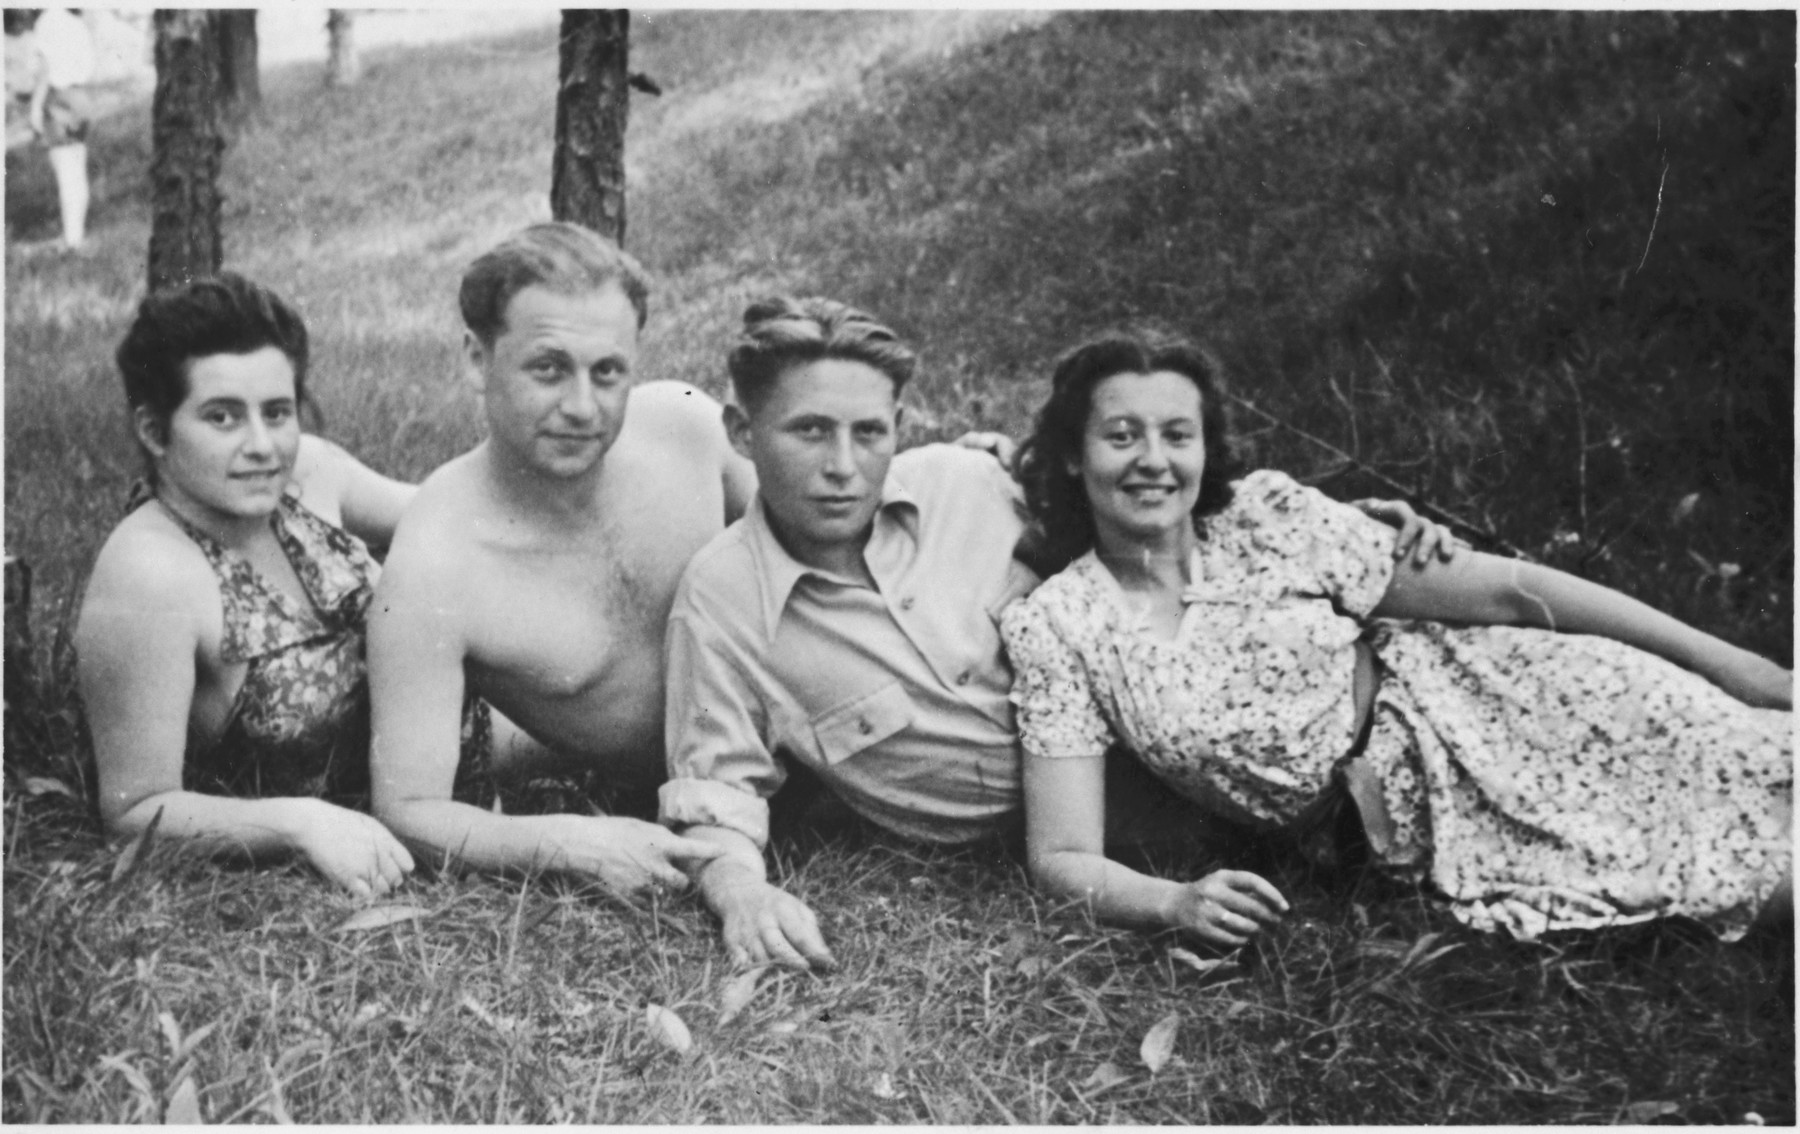 Four Jewish displaced persons lounge at the bottom of a grassy field.  Pictured are Dr. Genishevitz (second from left), his wife Ellis (far right), and two of their friends.   Dr. Genishevitz, a partisan, studied dentistry for four years in Germany before becoming accredited and immigrating to the United States. He said he wanted to avenge the German who had killed his father, and he managed to do so.